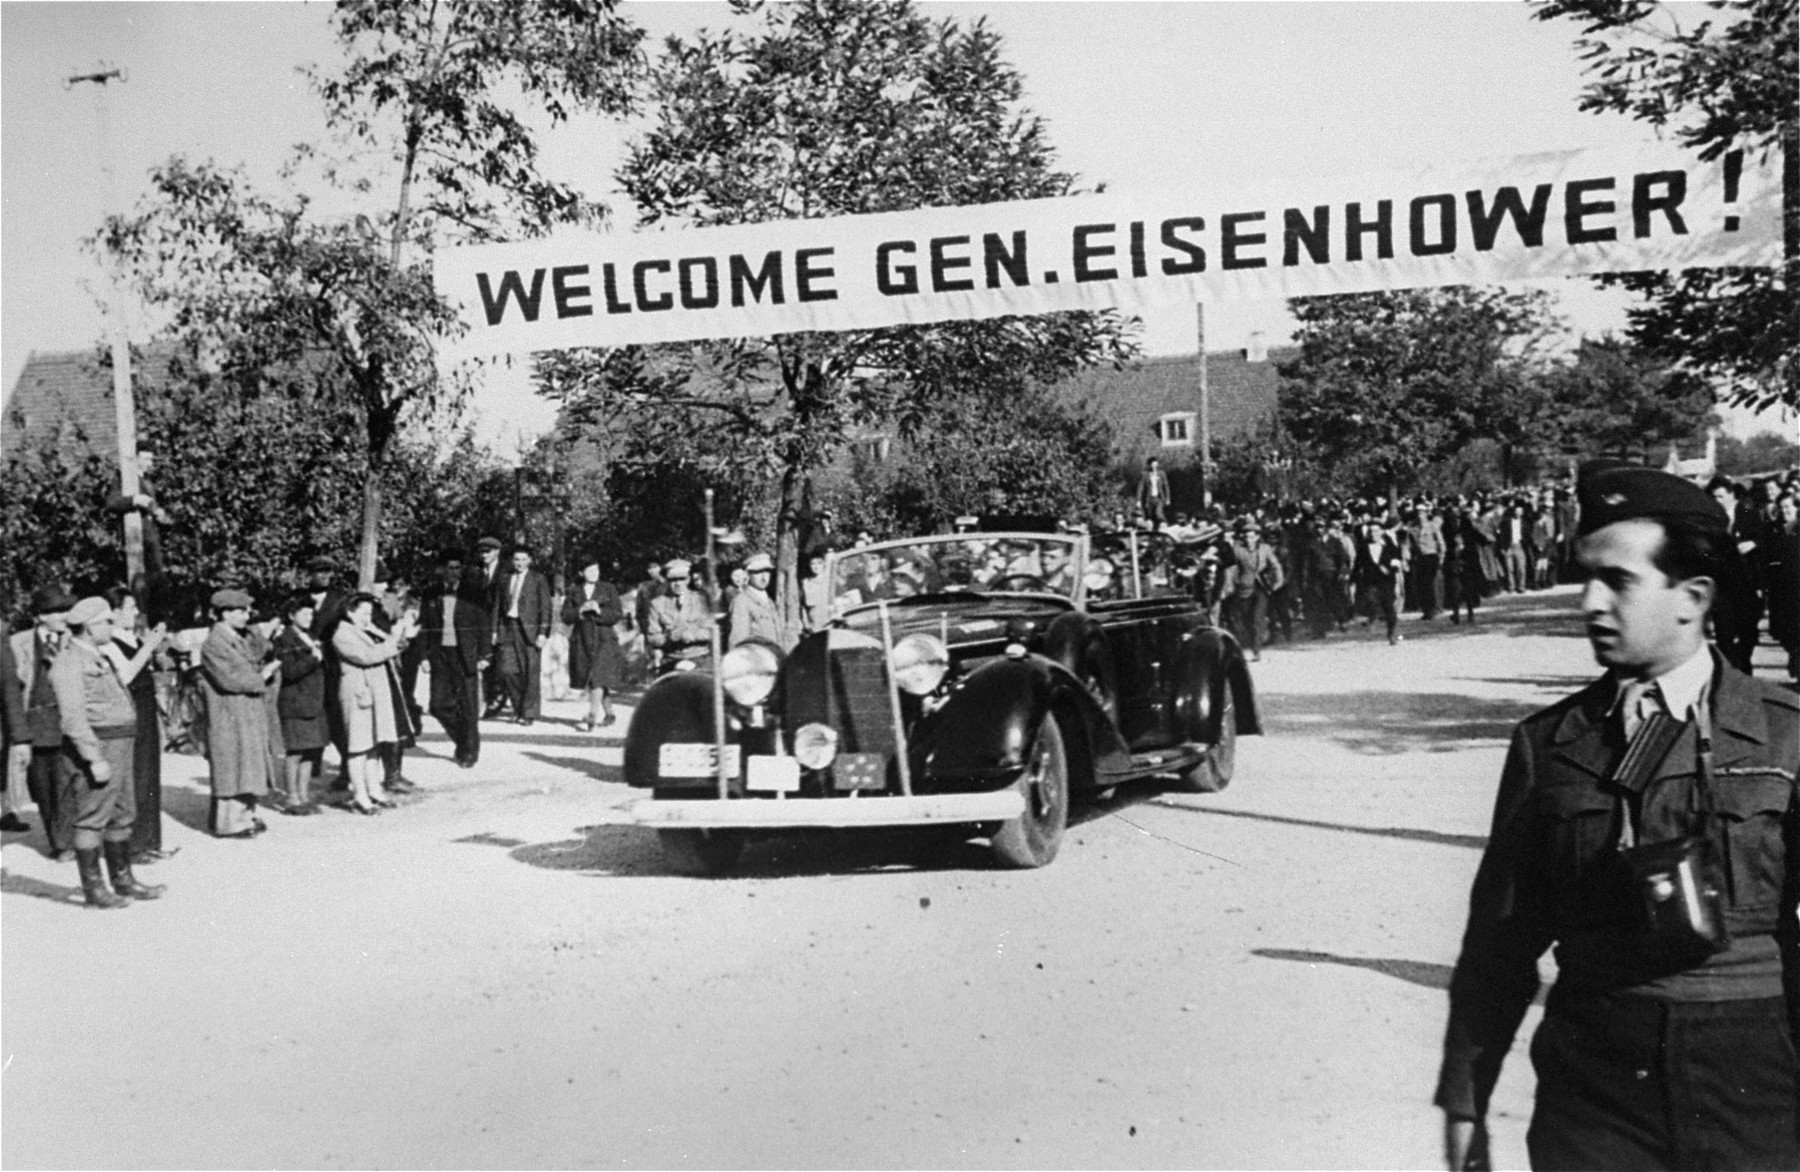 Neu Freimann residents greet General Dwight Eisenhower as his car drives into the displaced persons' camp.  Eisenhower's visits to Neu Freimann and other displaced persons' camps in the fall of 1945 was prompted by a strongly worded cable he received  from President Truman directing him to institute reforms to improve living conditions of displaced Jews in the American zone of occupation.